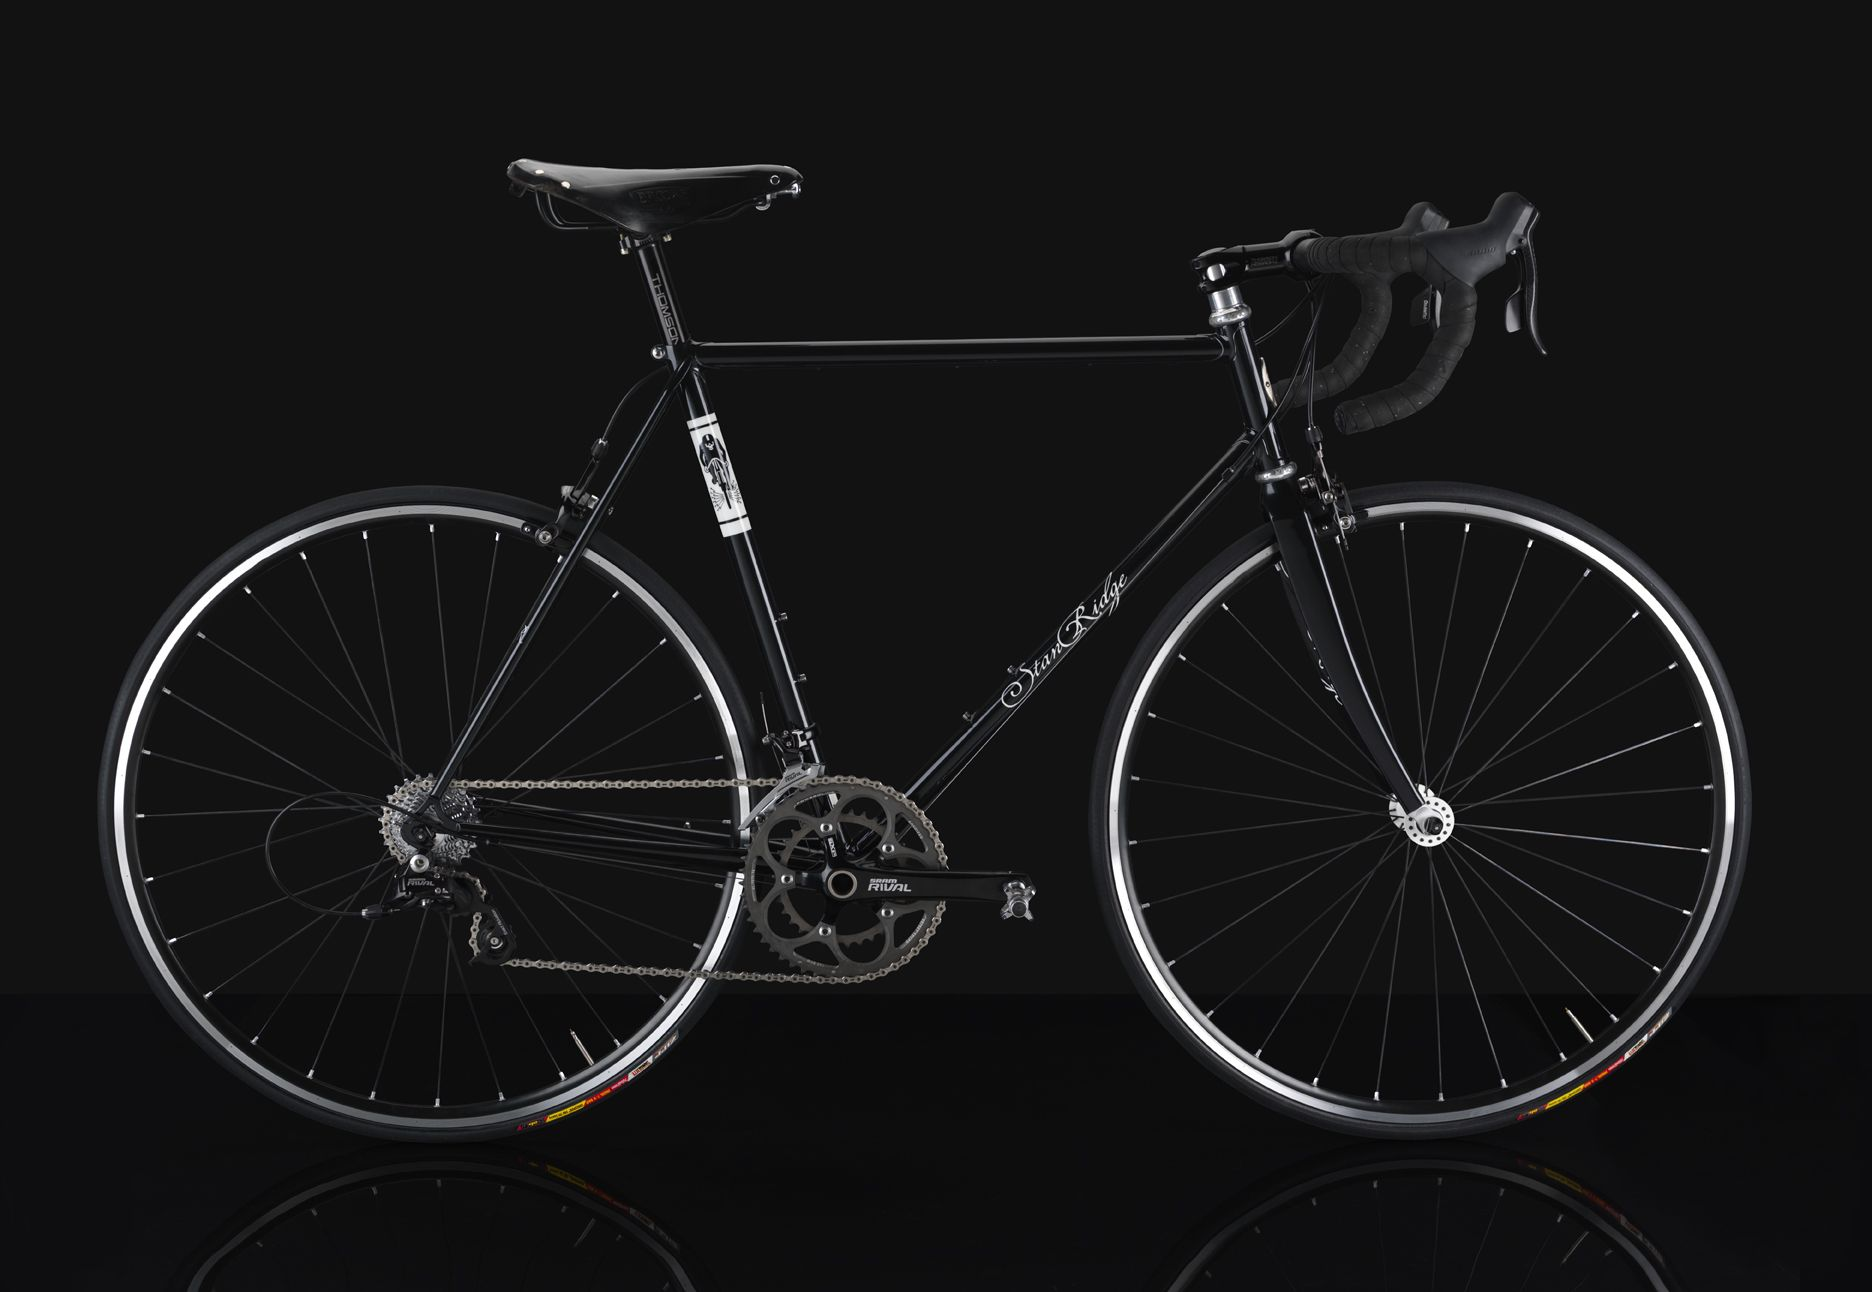 StanRidge Traditional Lugged road bike | Stanridge Speed Bicycles - http://www.stanridgespeed.com/